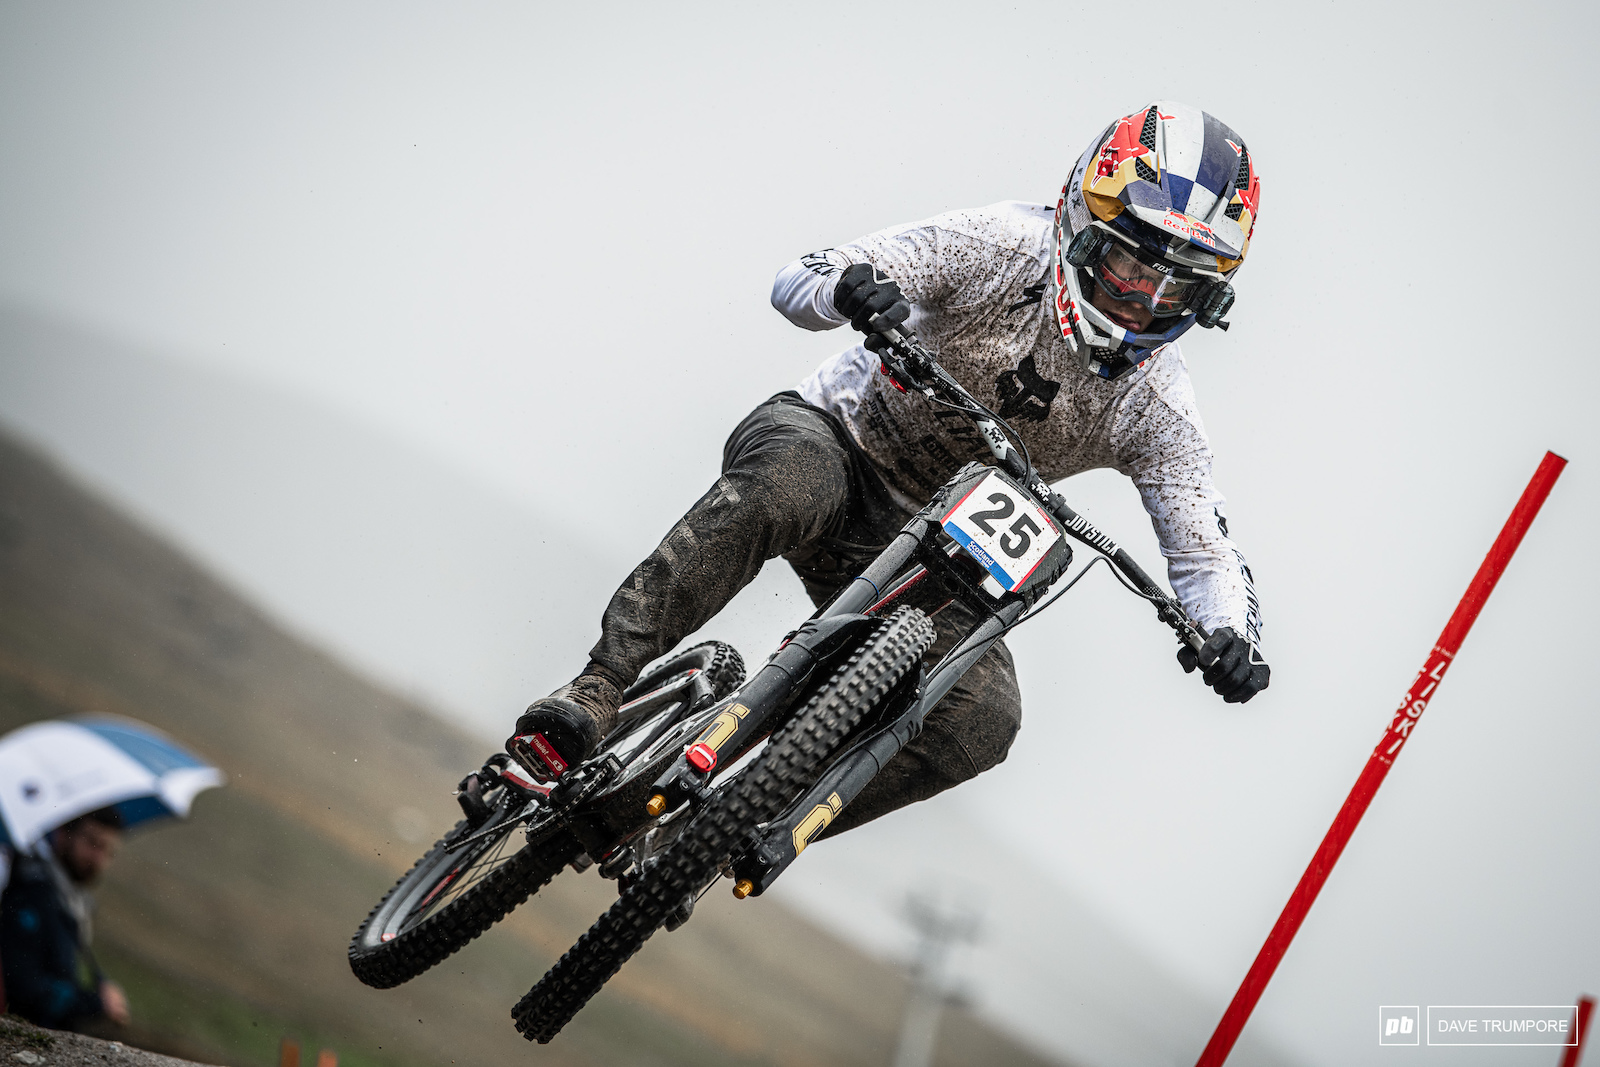 After a massive crash on Saturday Finn Iles rebounded to fight his way onto the podium in 5th.